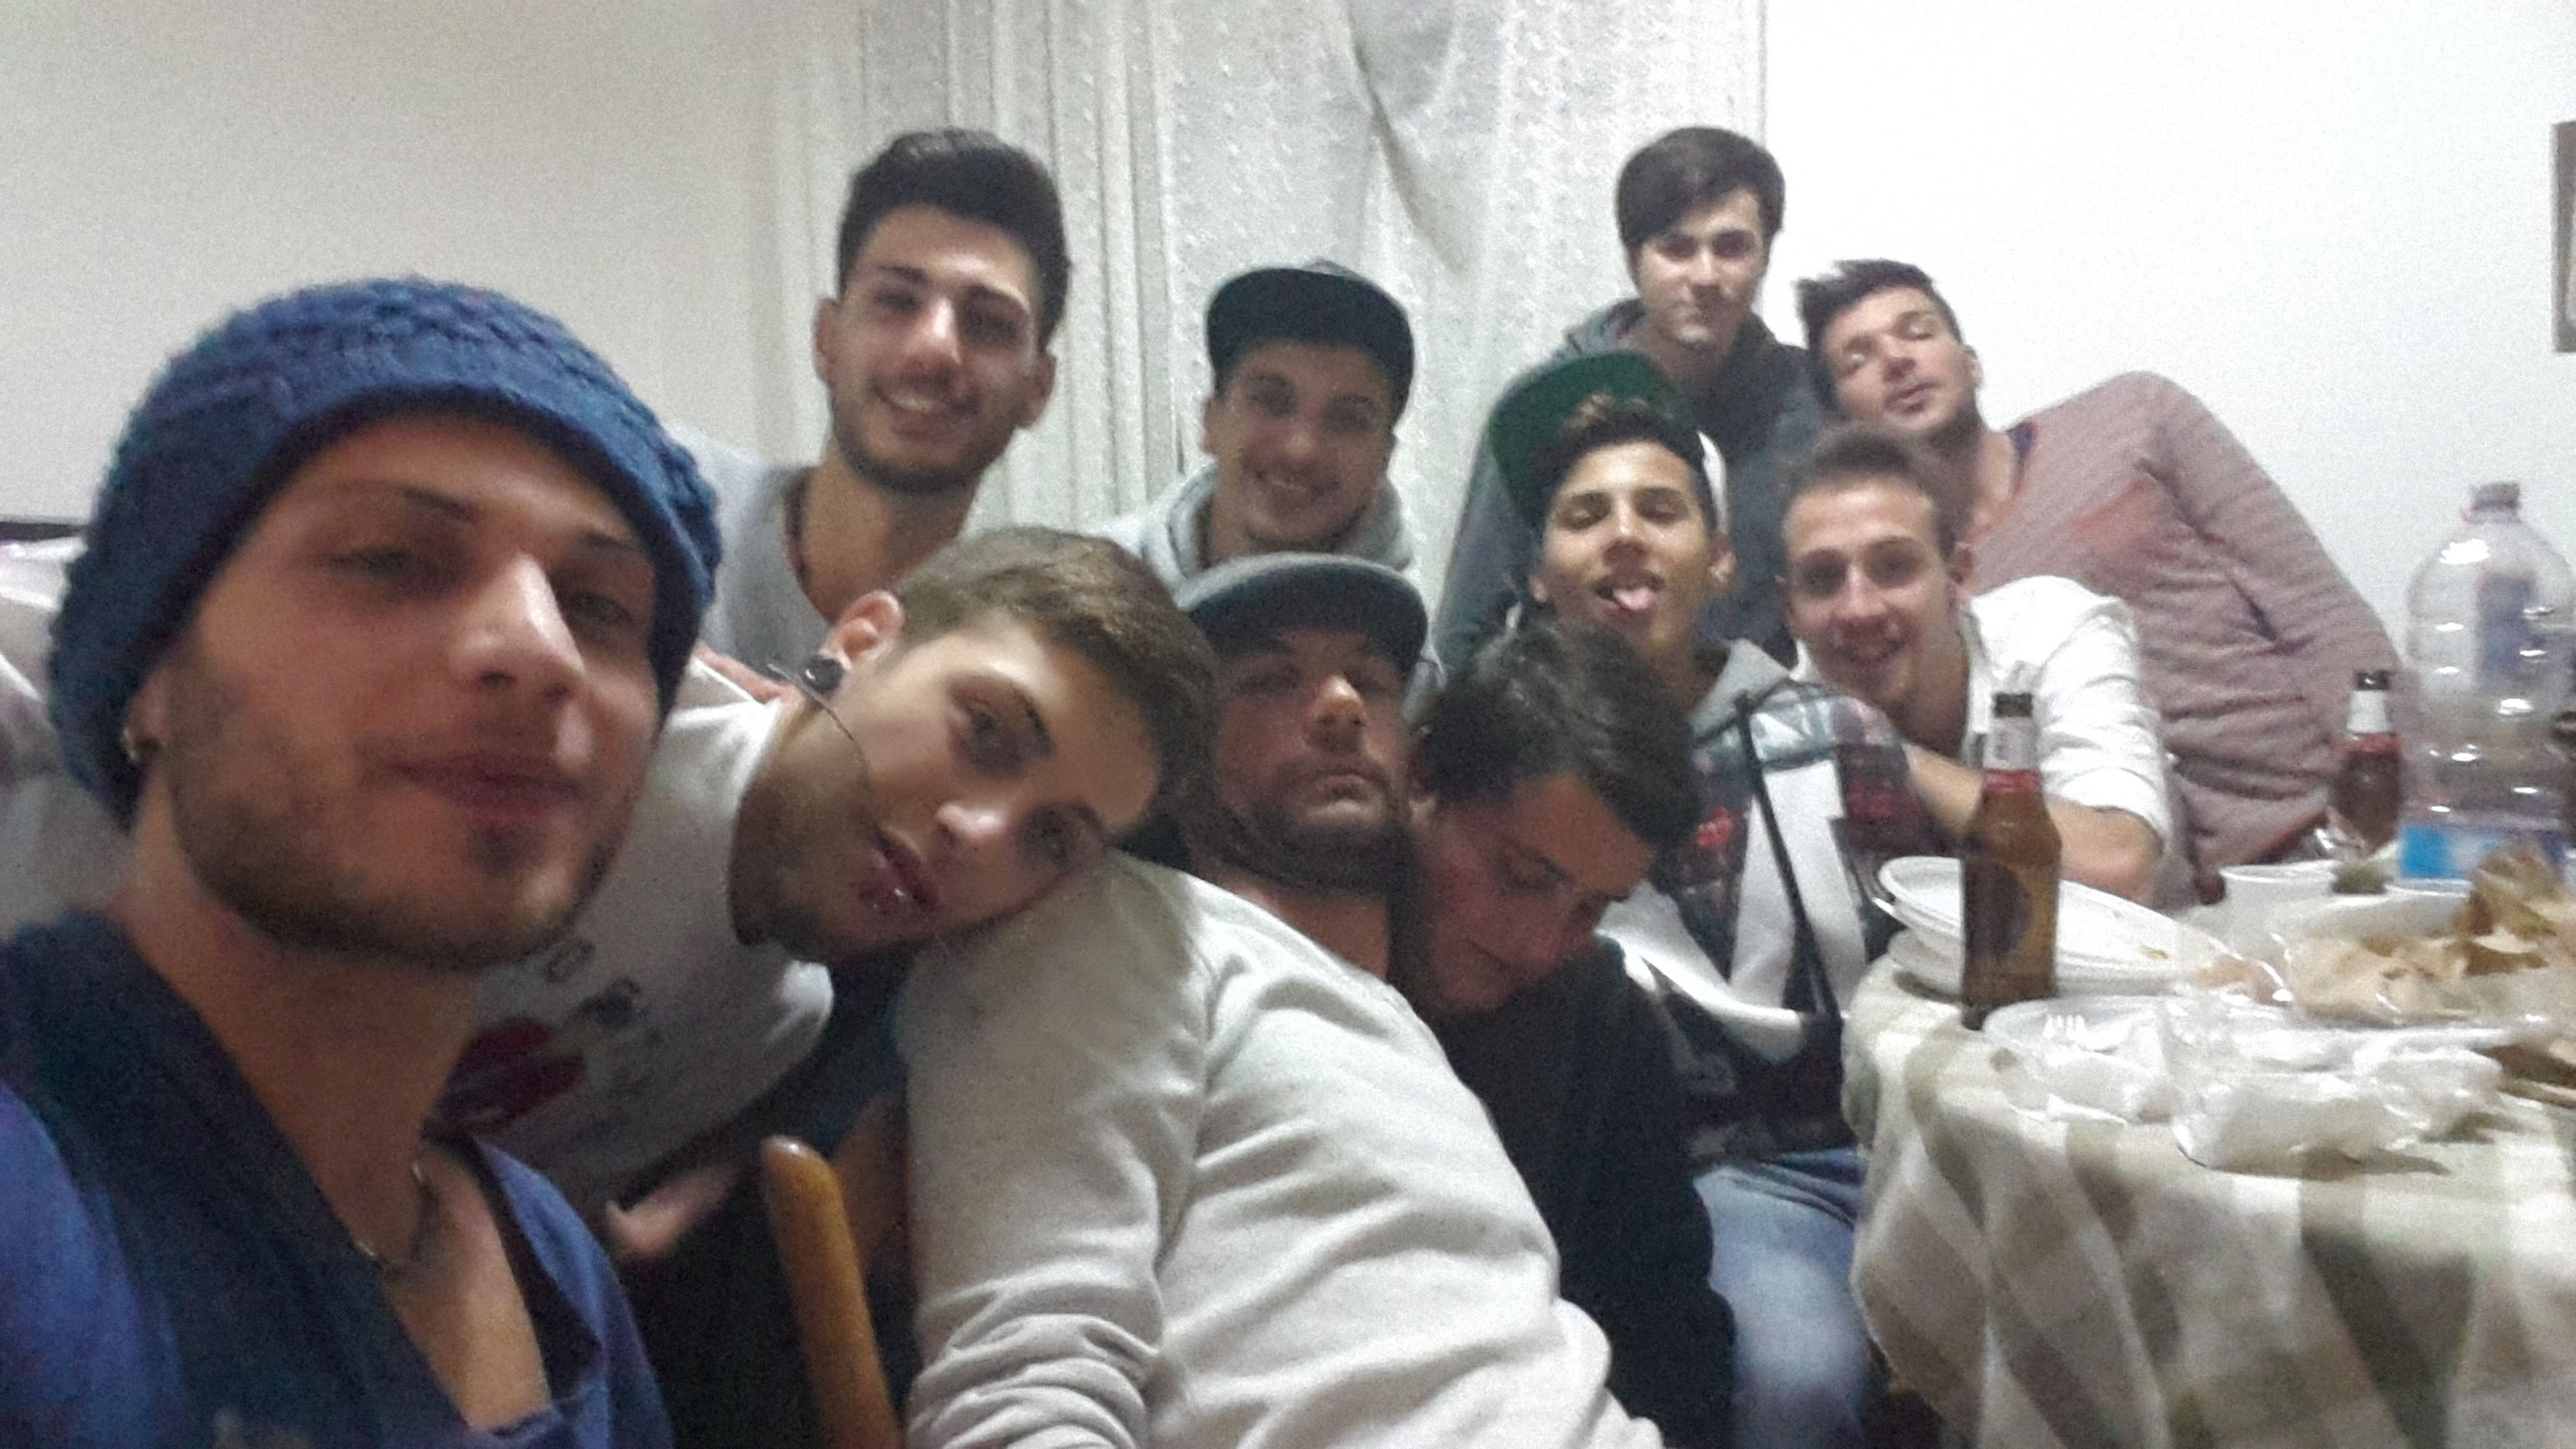 indoors, togetherness, lifestyles, young men, leisure activity, men, bonding, casual clothing, love, friendship, sitting, person, mid adult men, front view, young adult, smiling, side by side